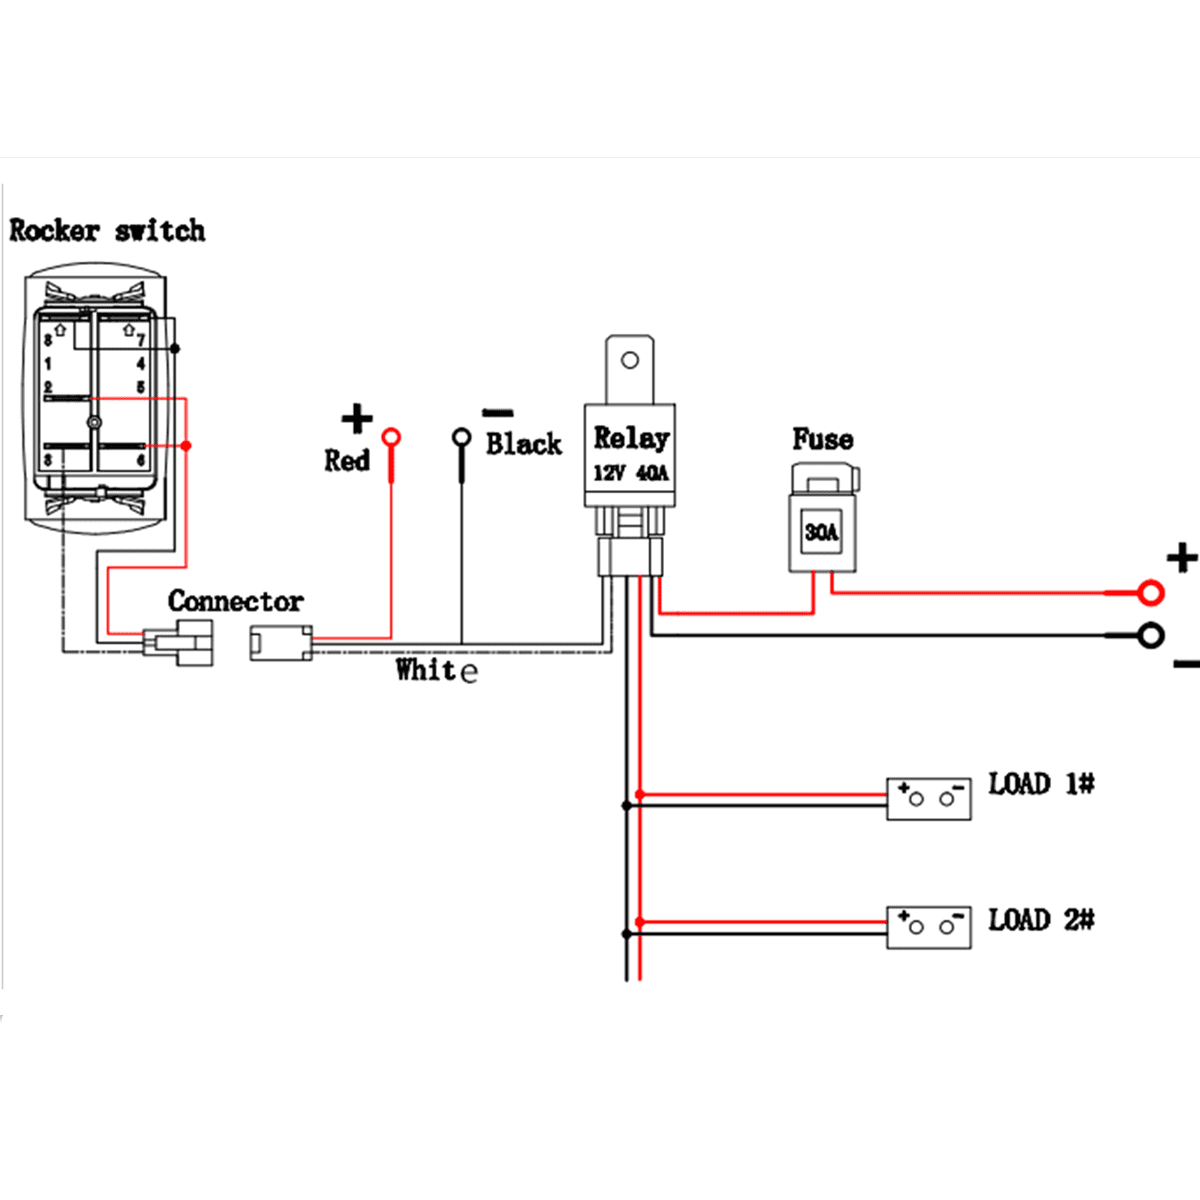 Relay Wiring Diagram Further Electrical Light Switch Wiring Diagram